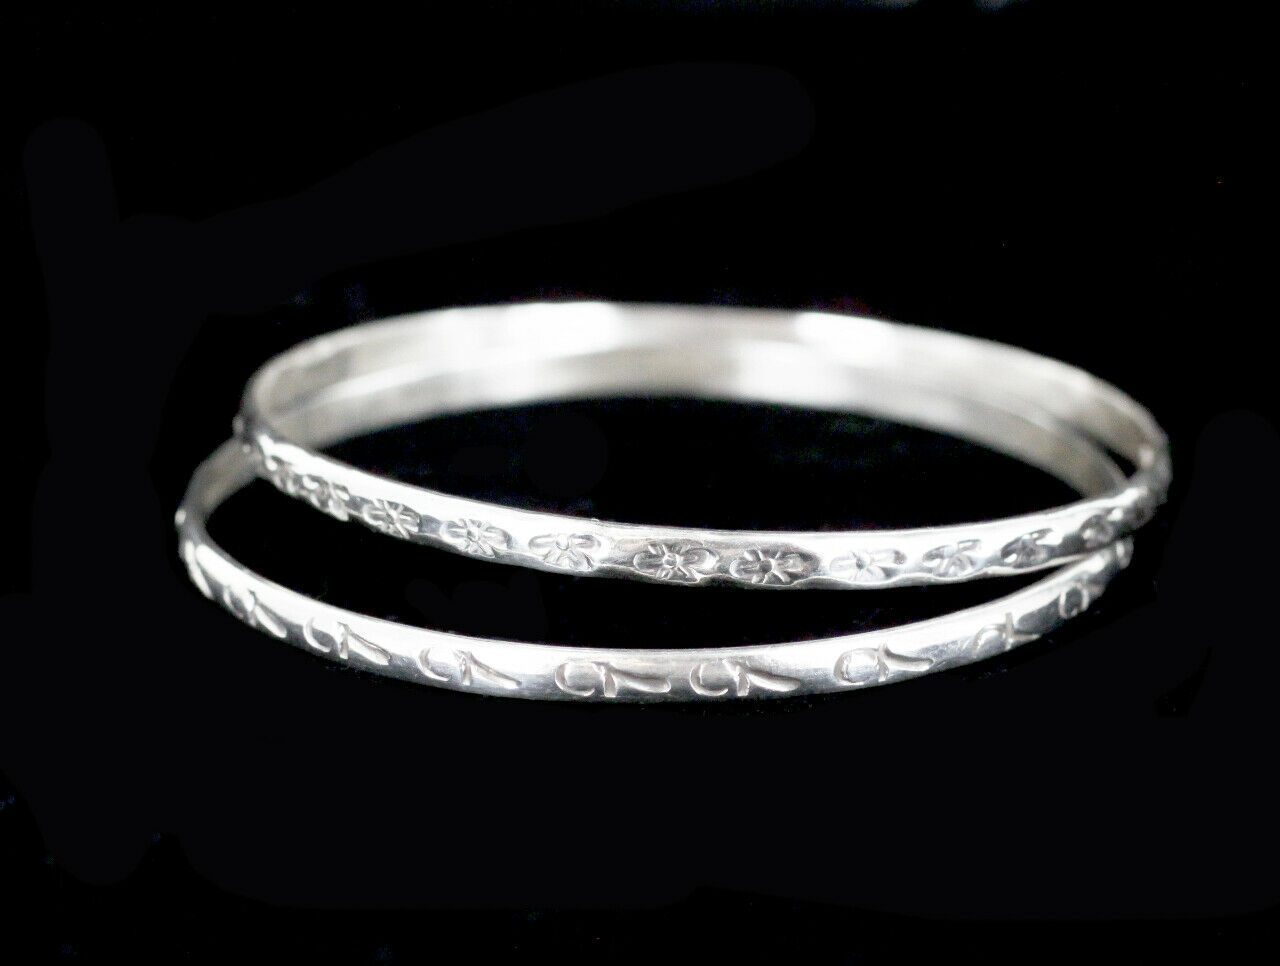 Vintage Taxco Mexico Sterling Silver Pattern Bangle Bracelet Pair Set